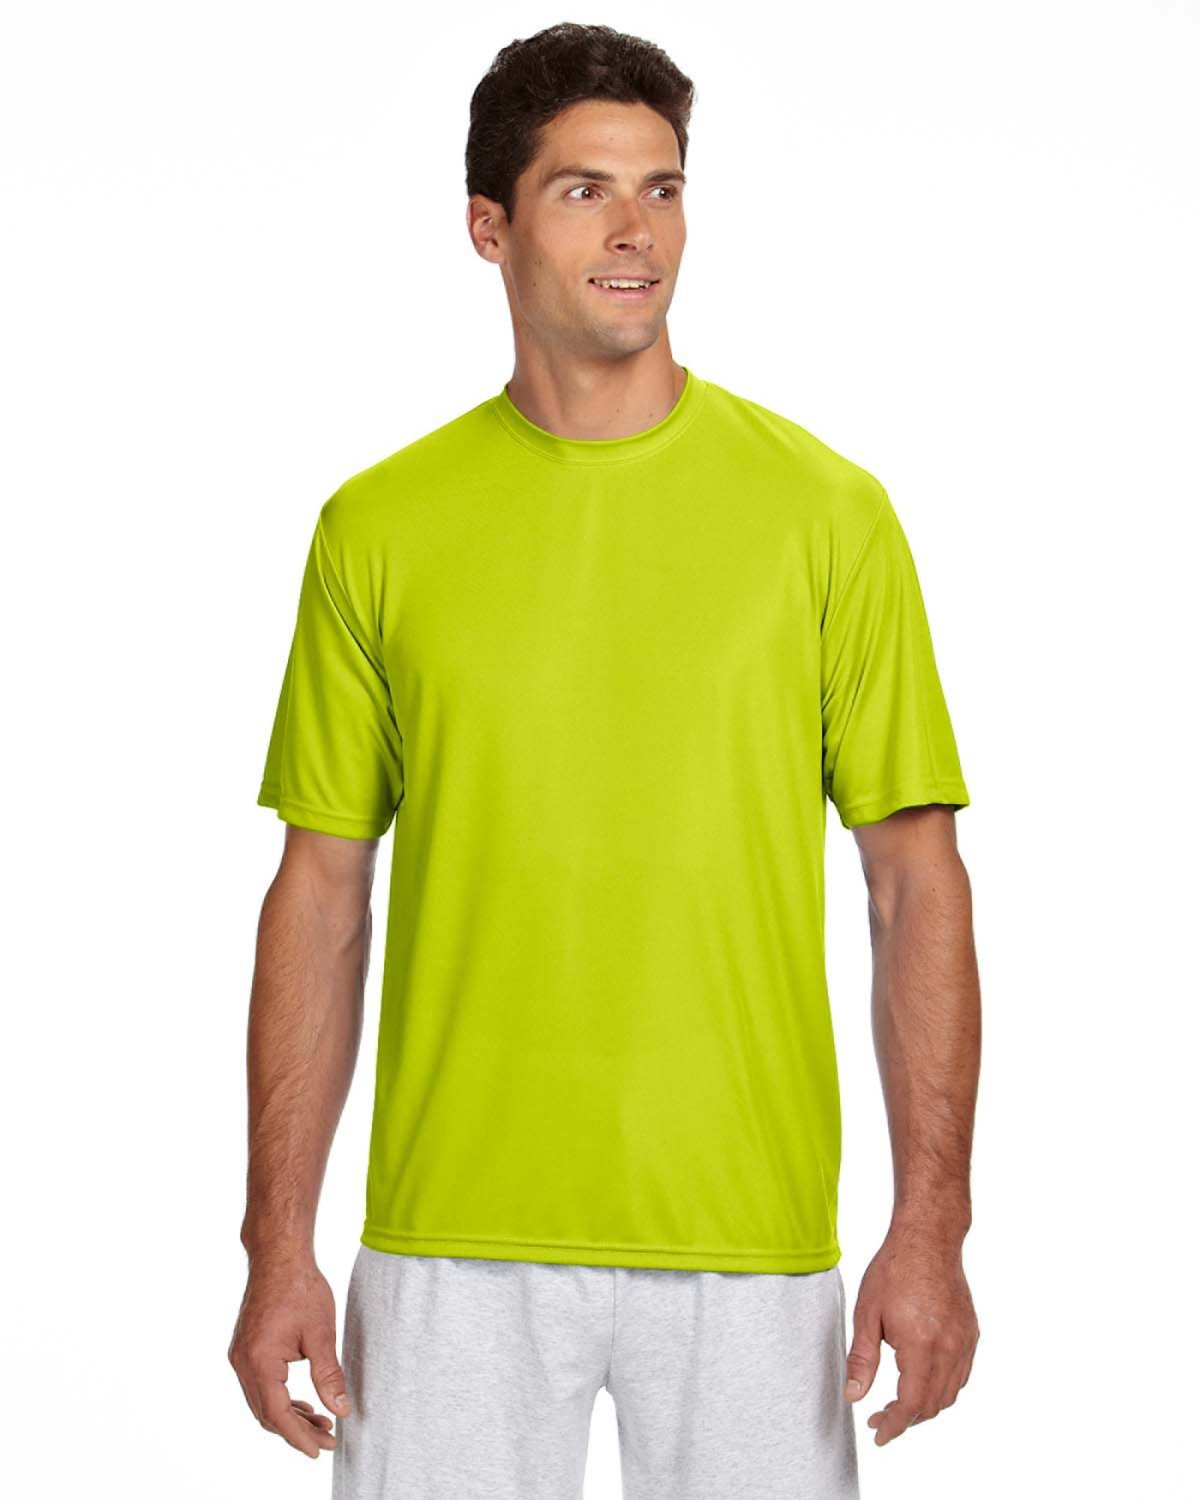 A4 Men's Cooling Performance T-Shirt SAFETY YELLOW